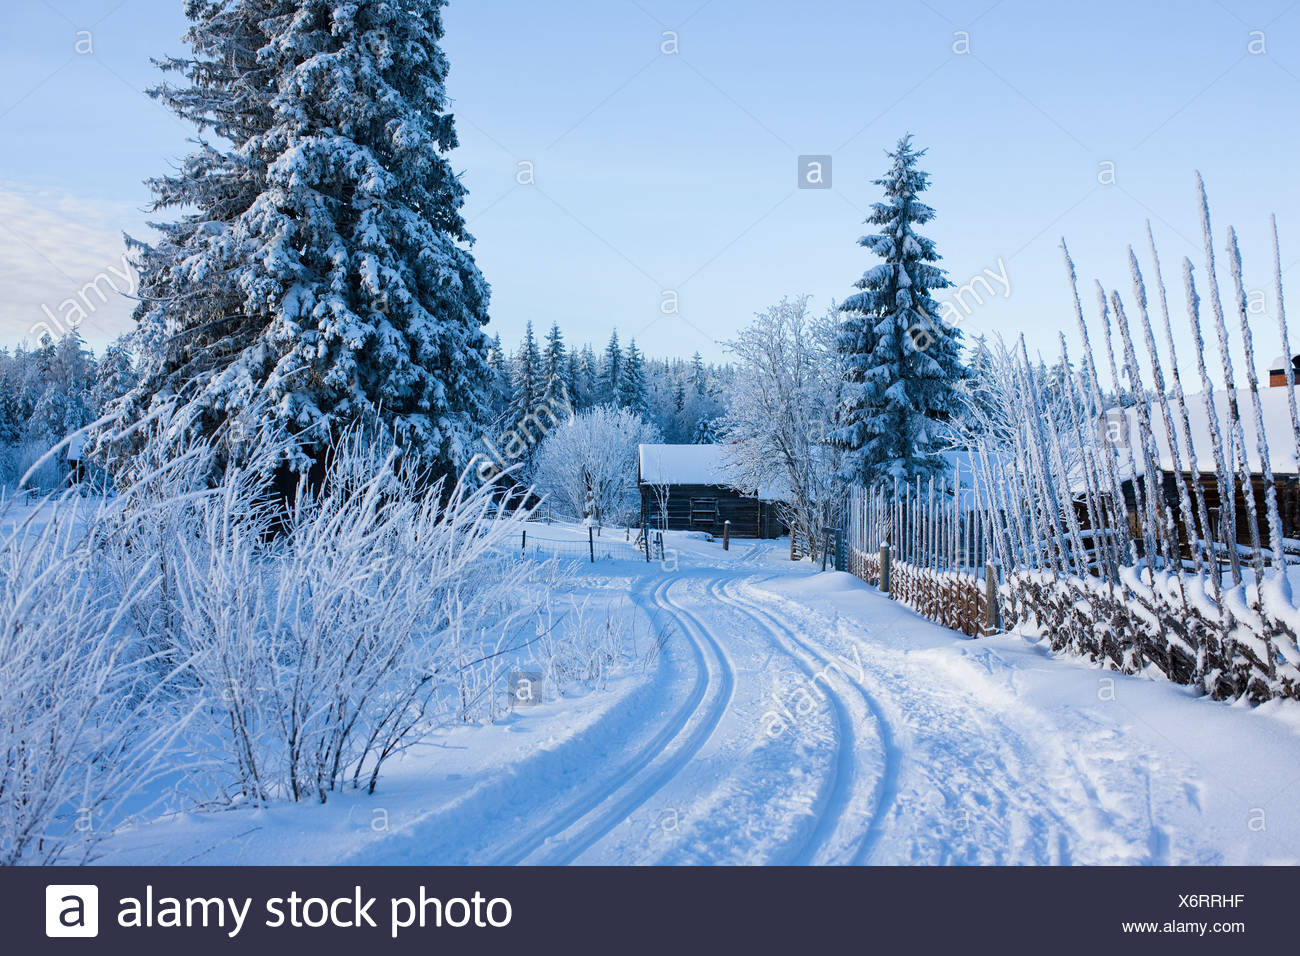 Wintry mountain pasture, Sweden. - Stock Image